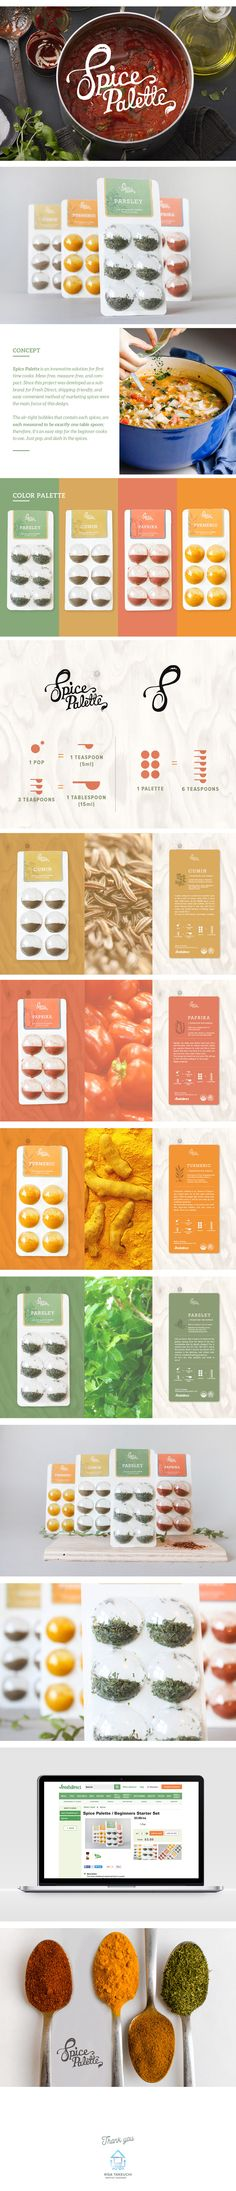 Spice kit packaging which seals the spices into six different air-tight bubbles, keeping the spice fresh and ready-to-use.  Each bubbles contain one teaspoon of spices, which keeps away from the customers to use measuring spoons.